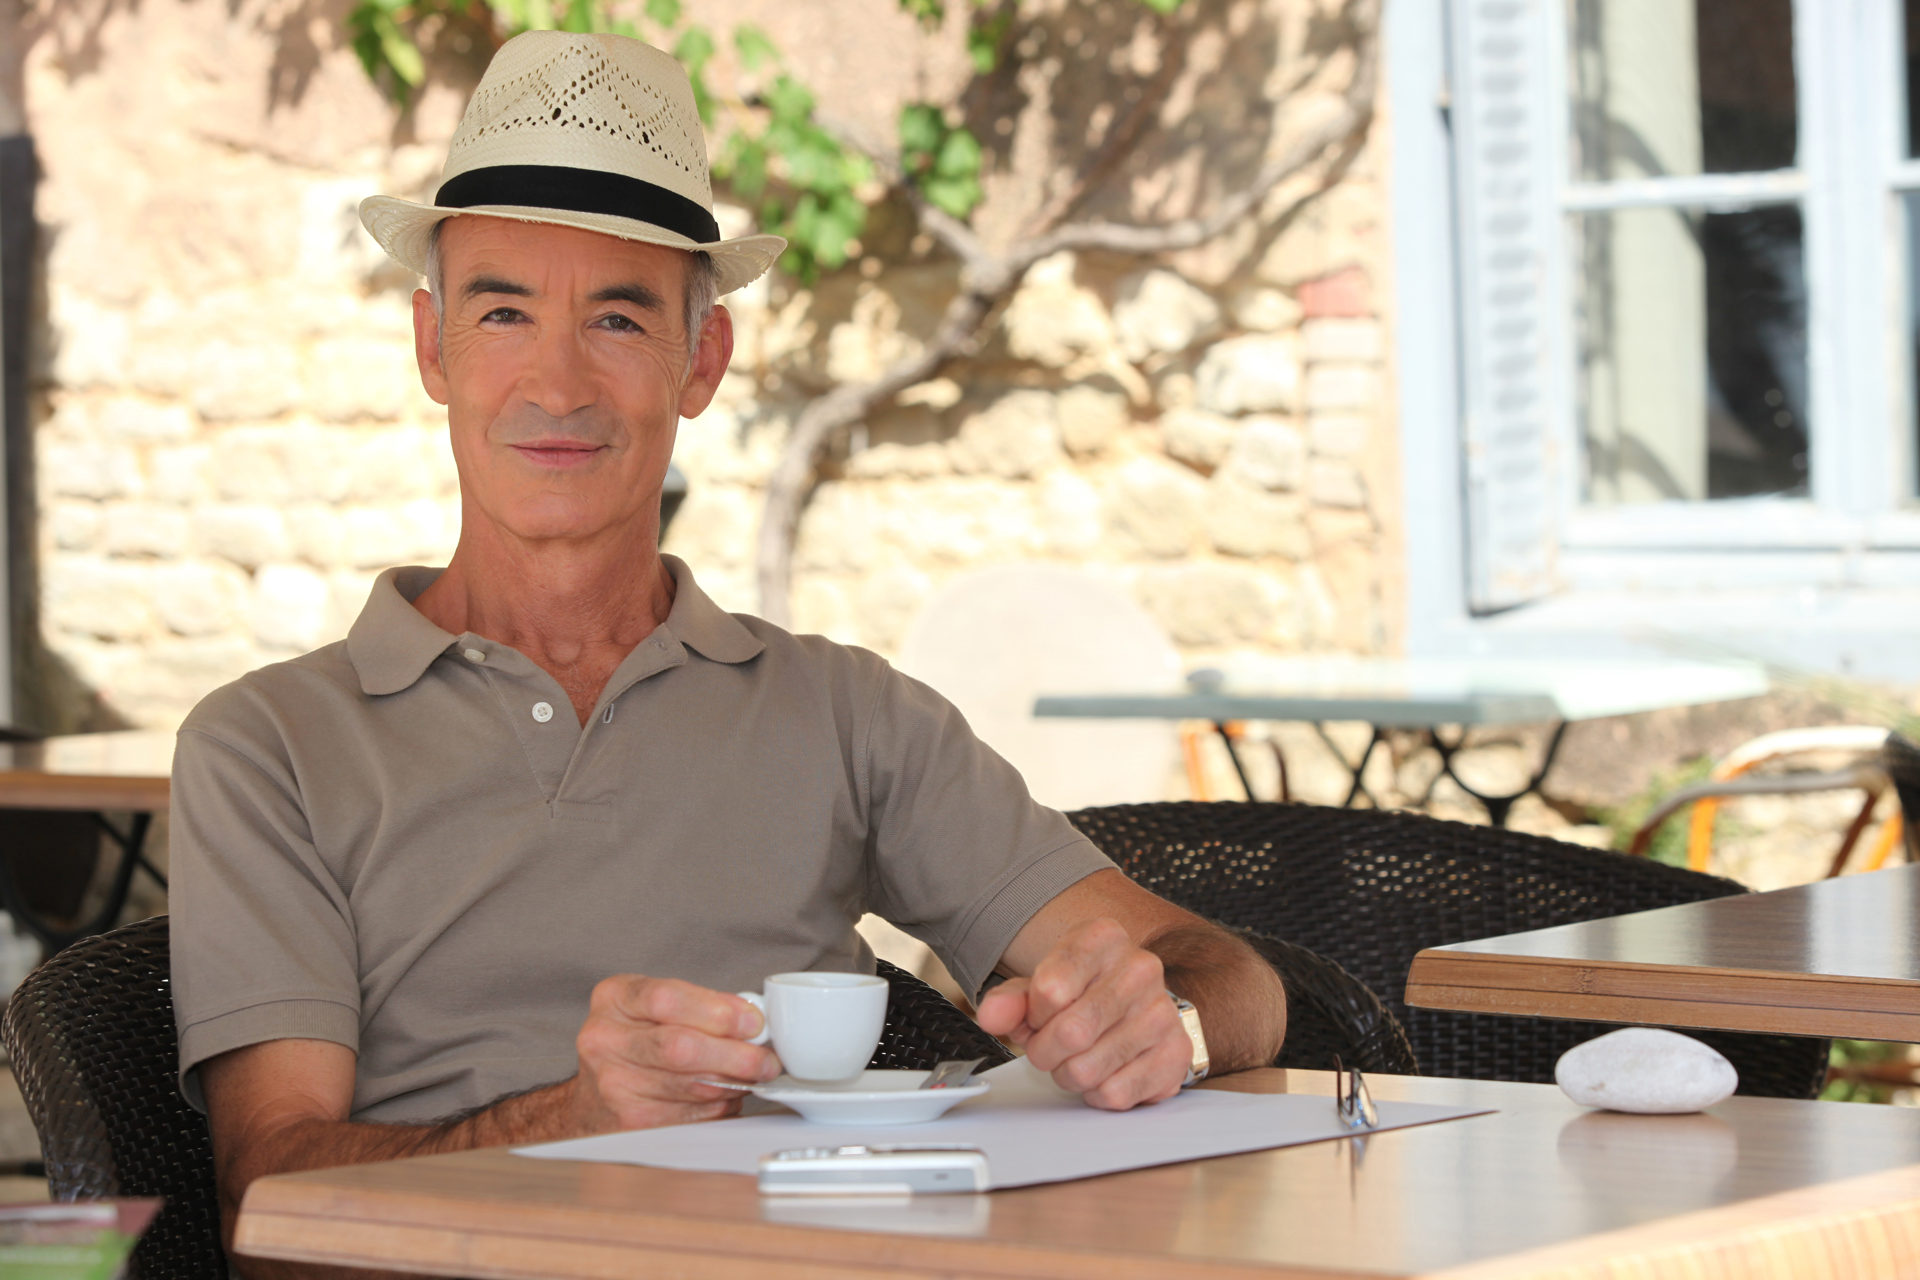 Elderly man enjoying a cup of coffee in a cafe